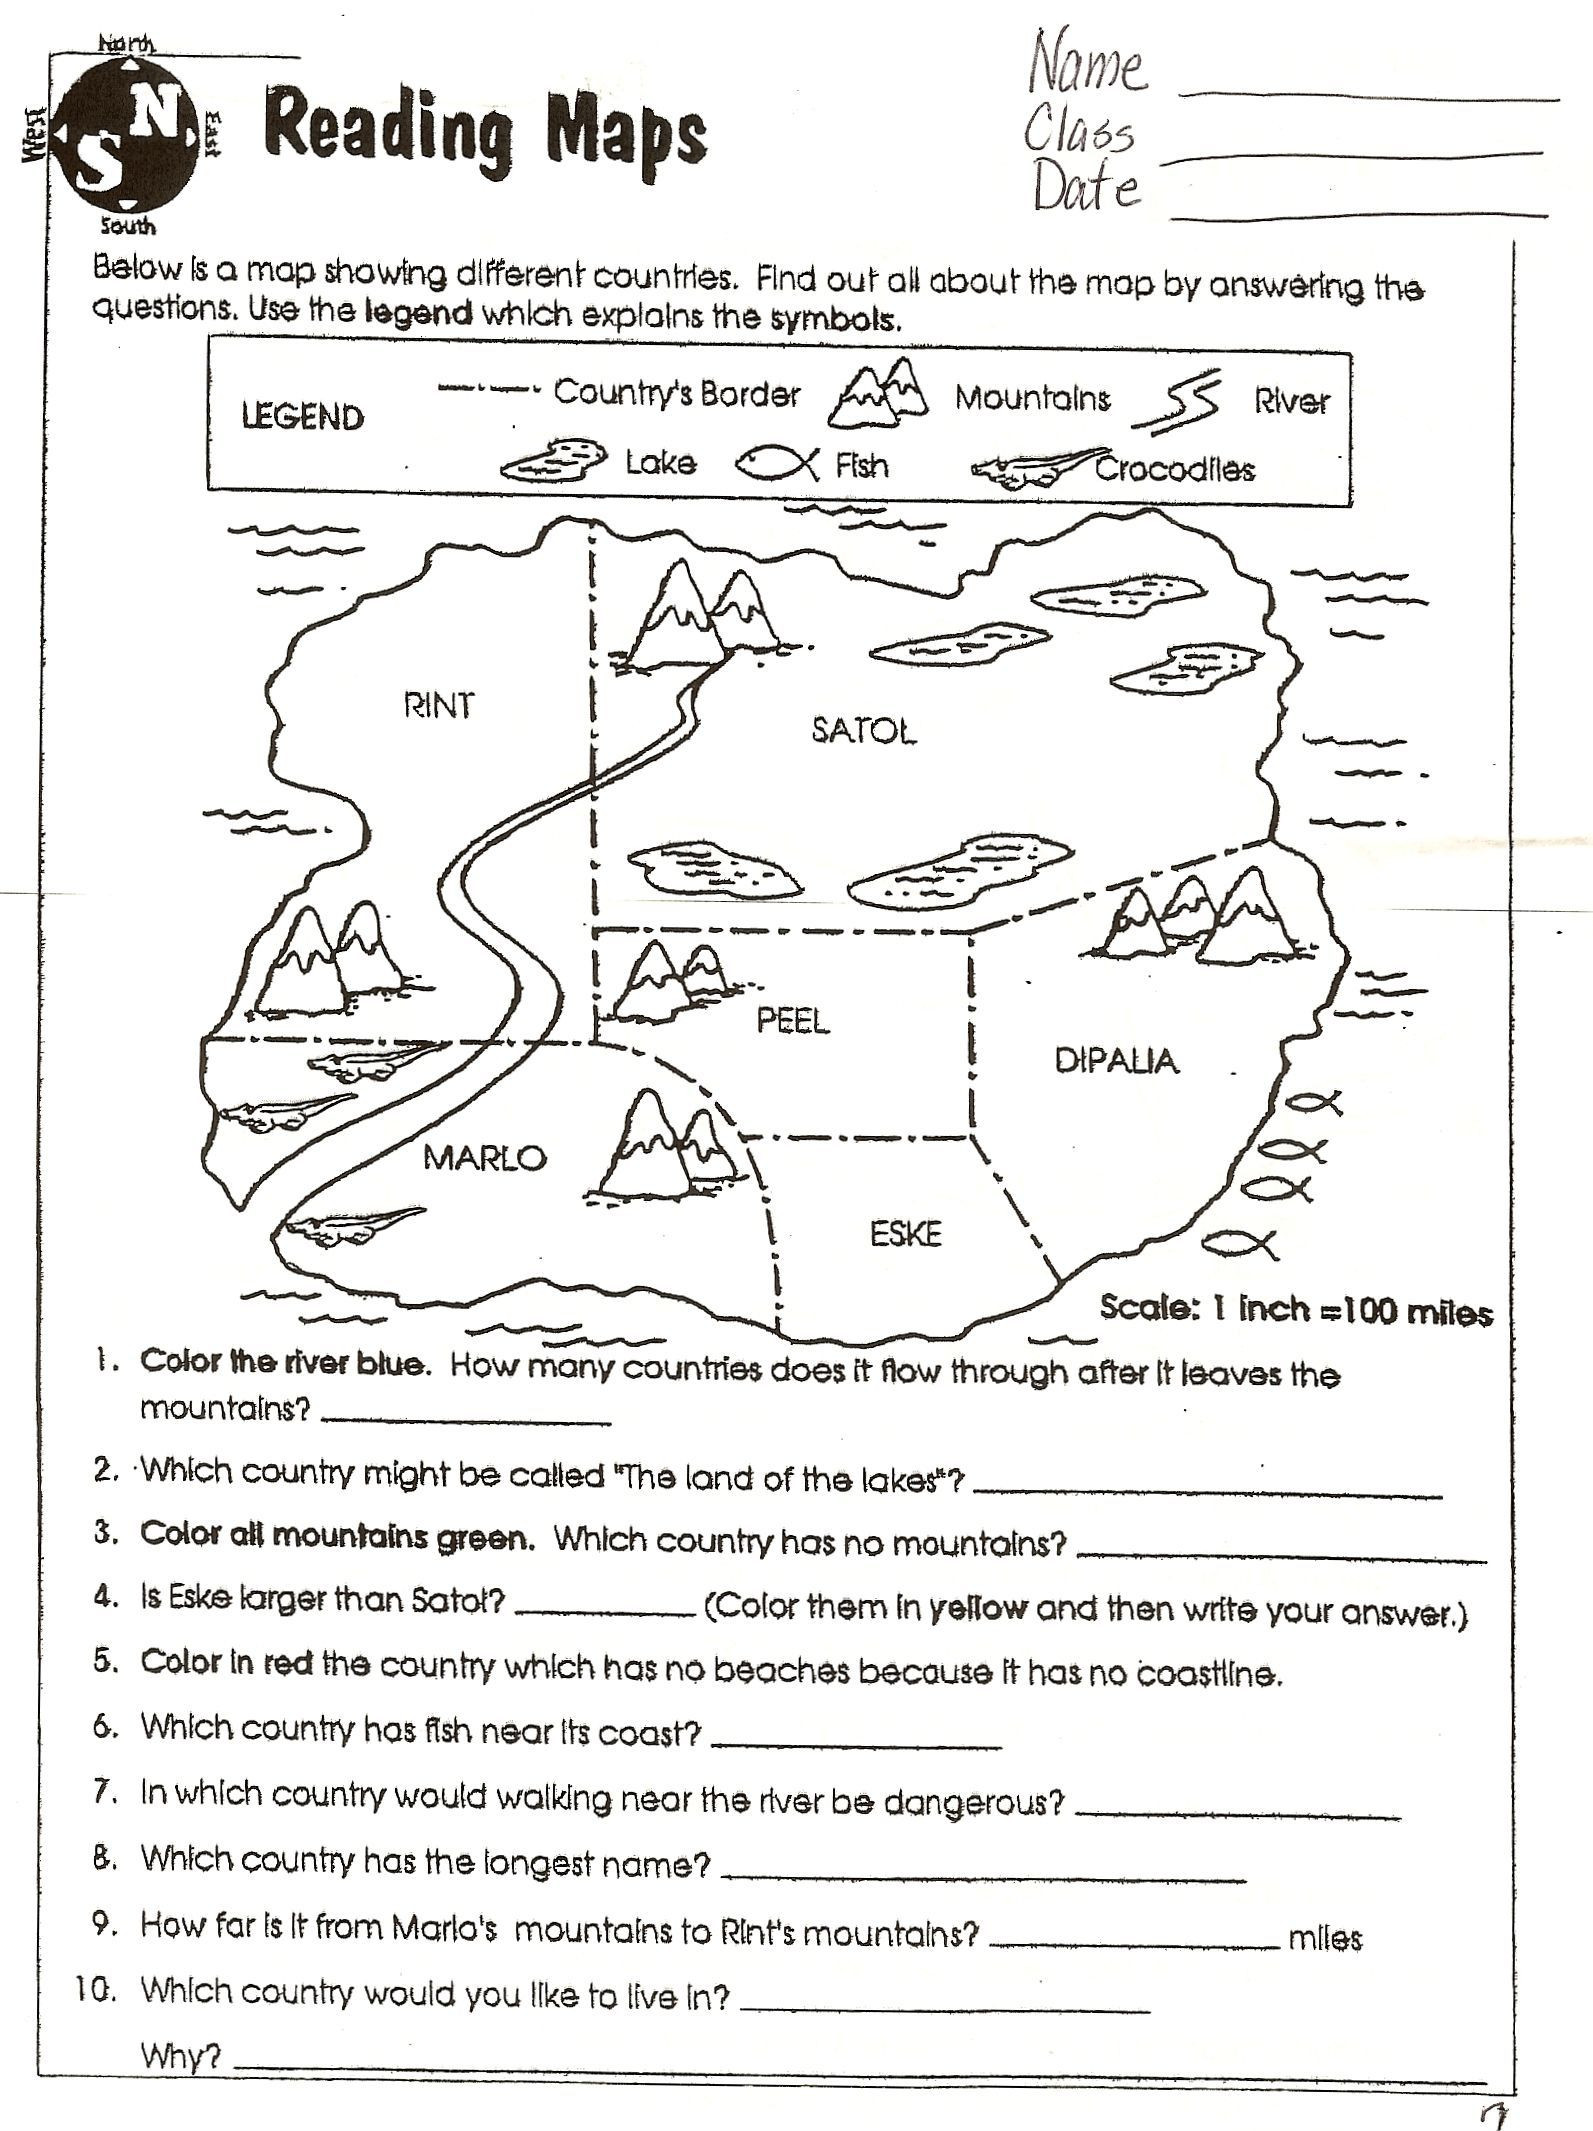 6th Grade Reading Worksheets Printable Reading Worksheets Grade 6th social Stu S Skills Middle